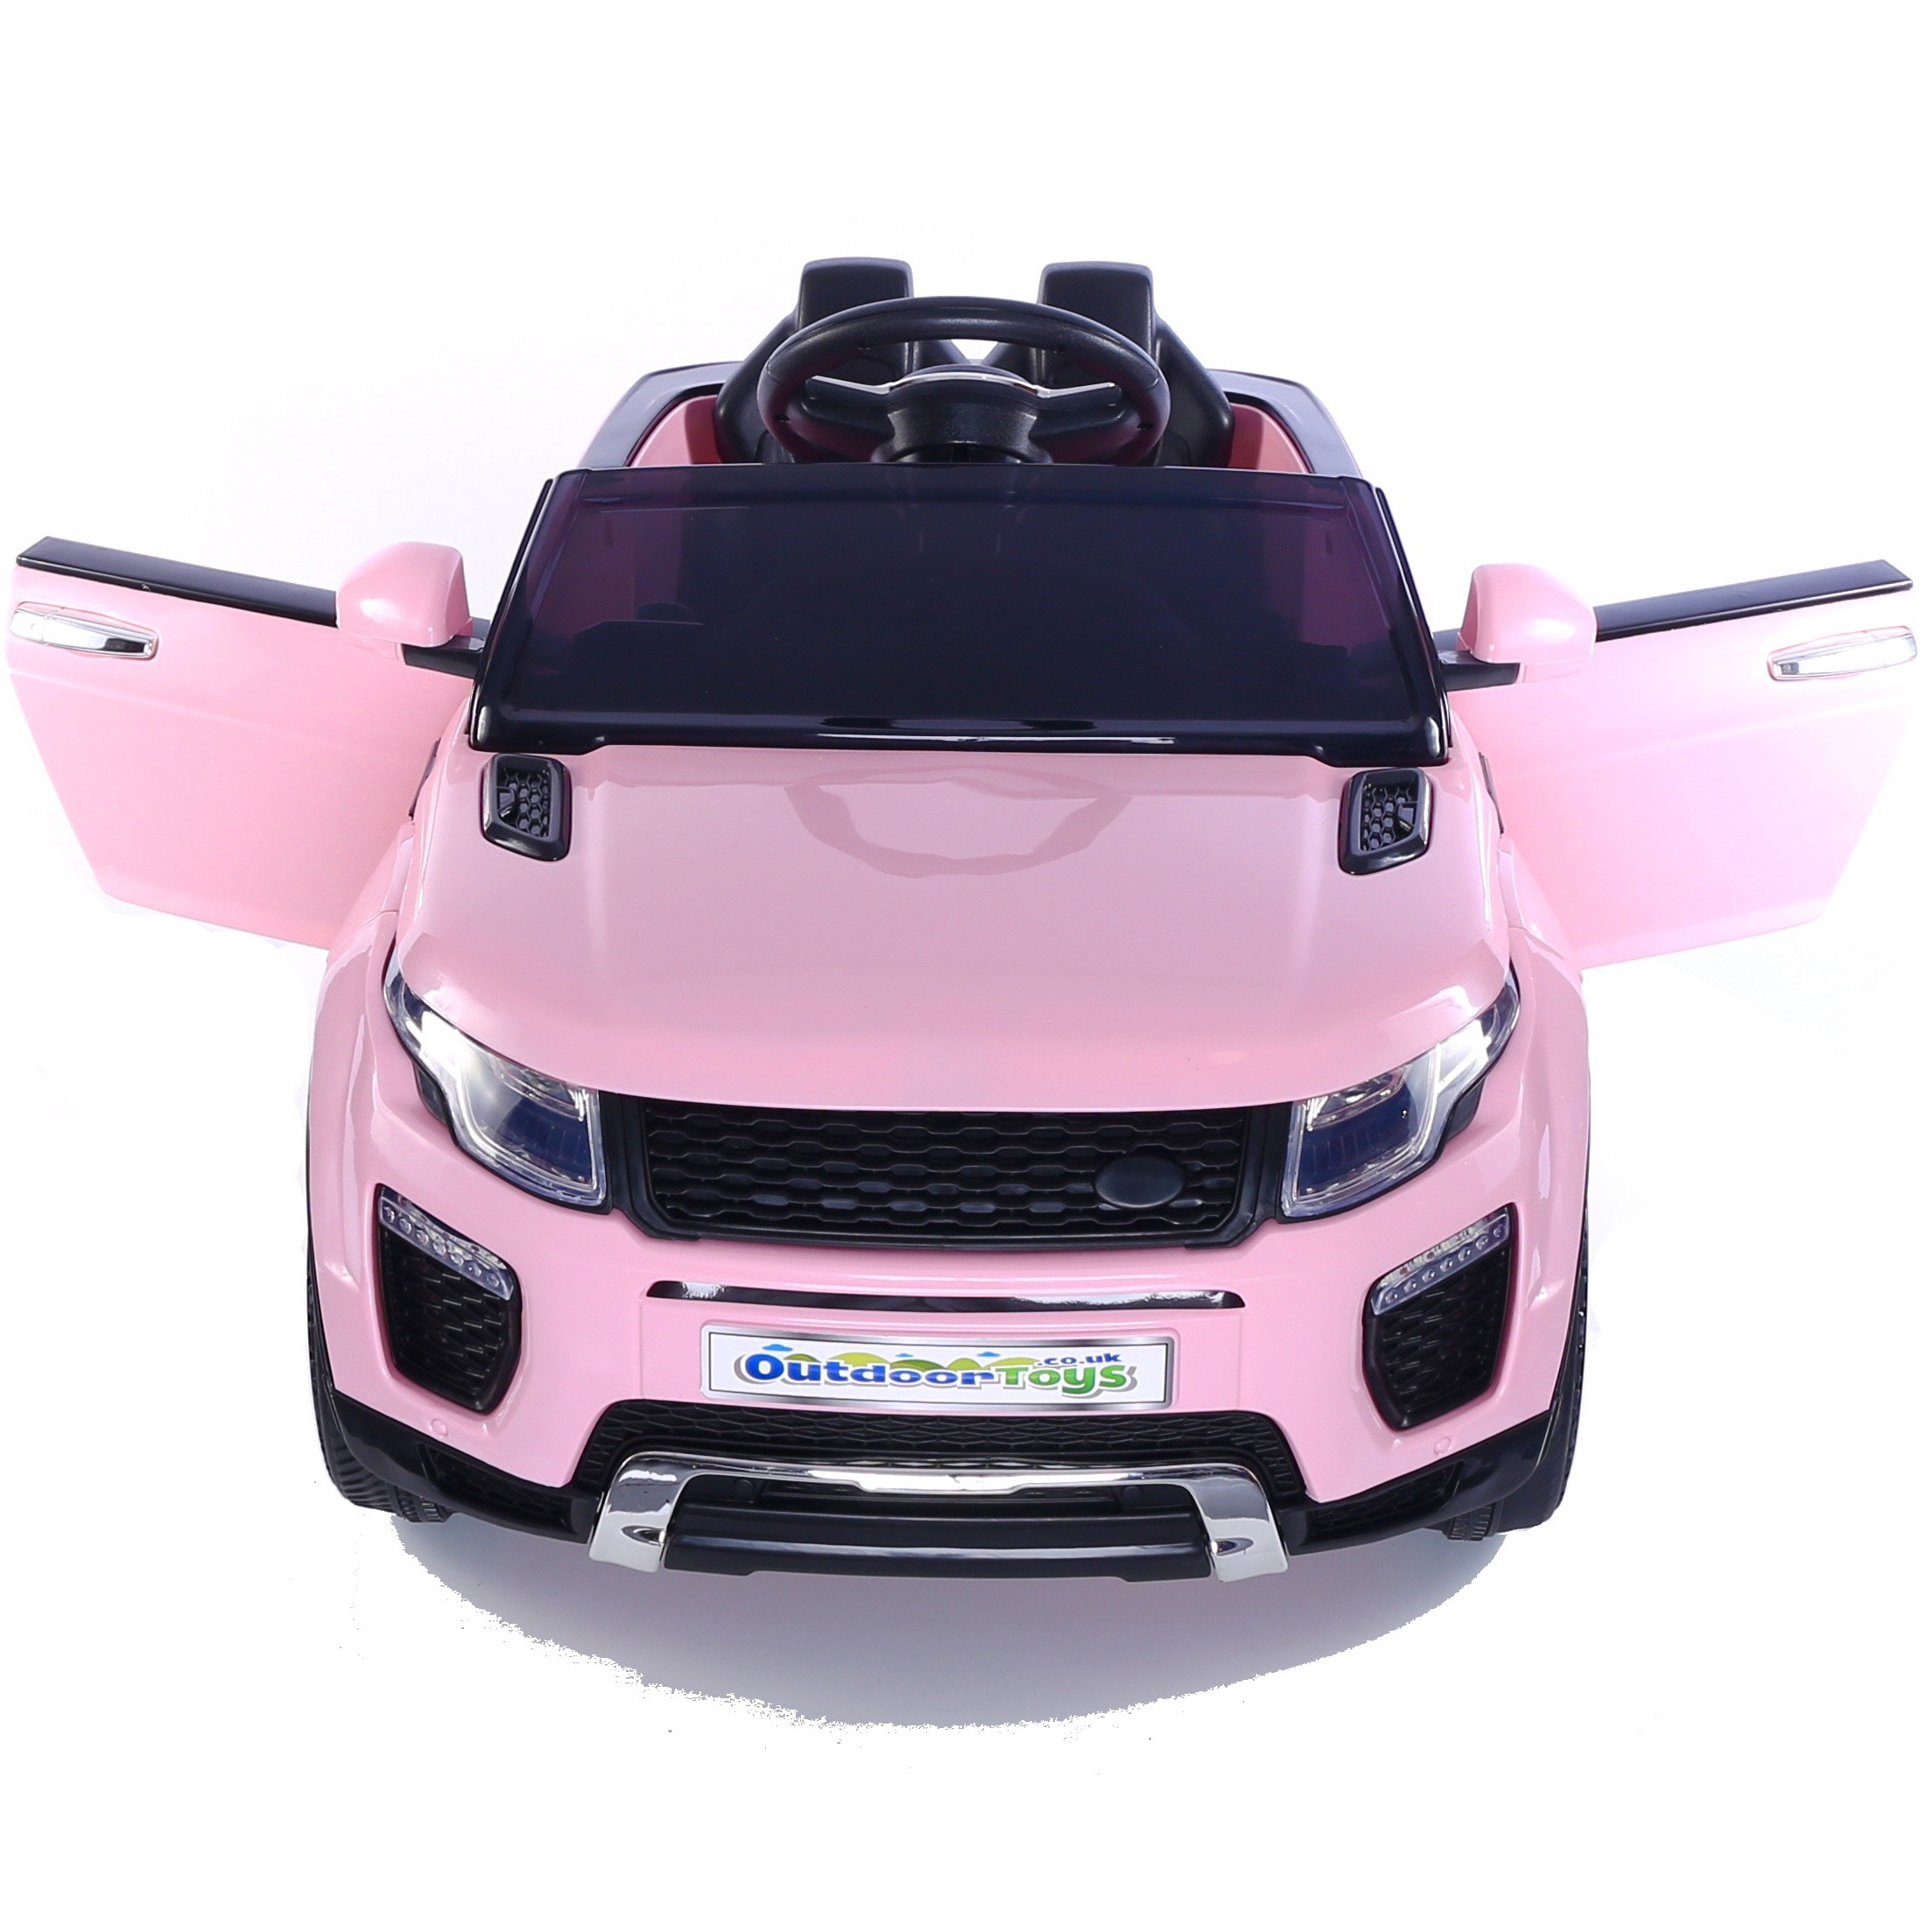 461d299ace0 12V Evo-que Style Child s Ride On Car Jeep - Pink